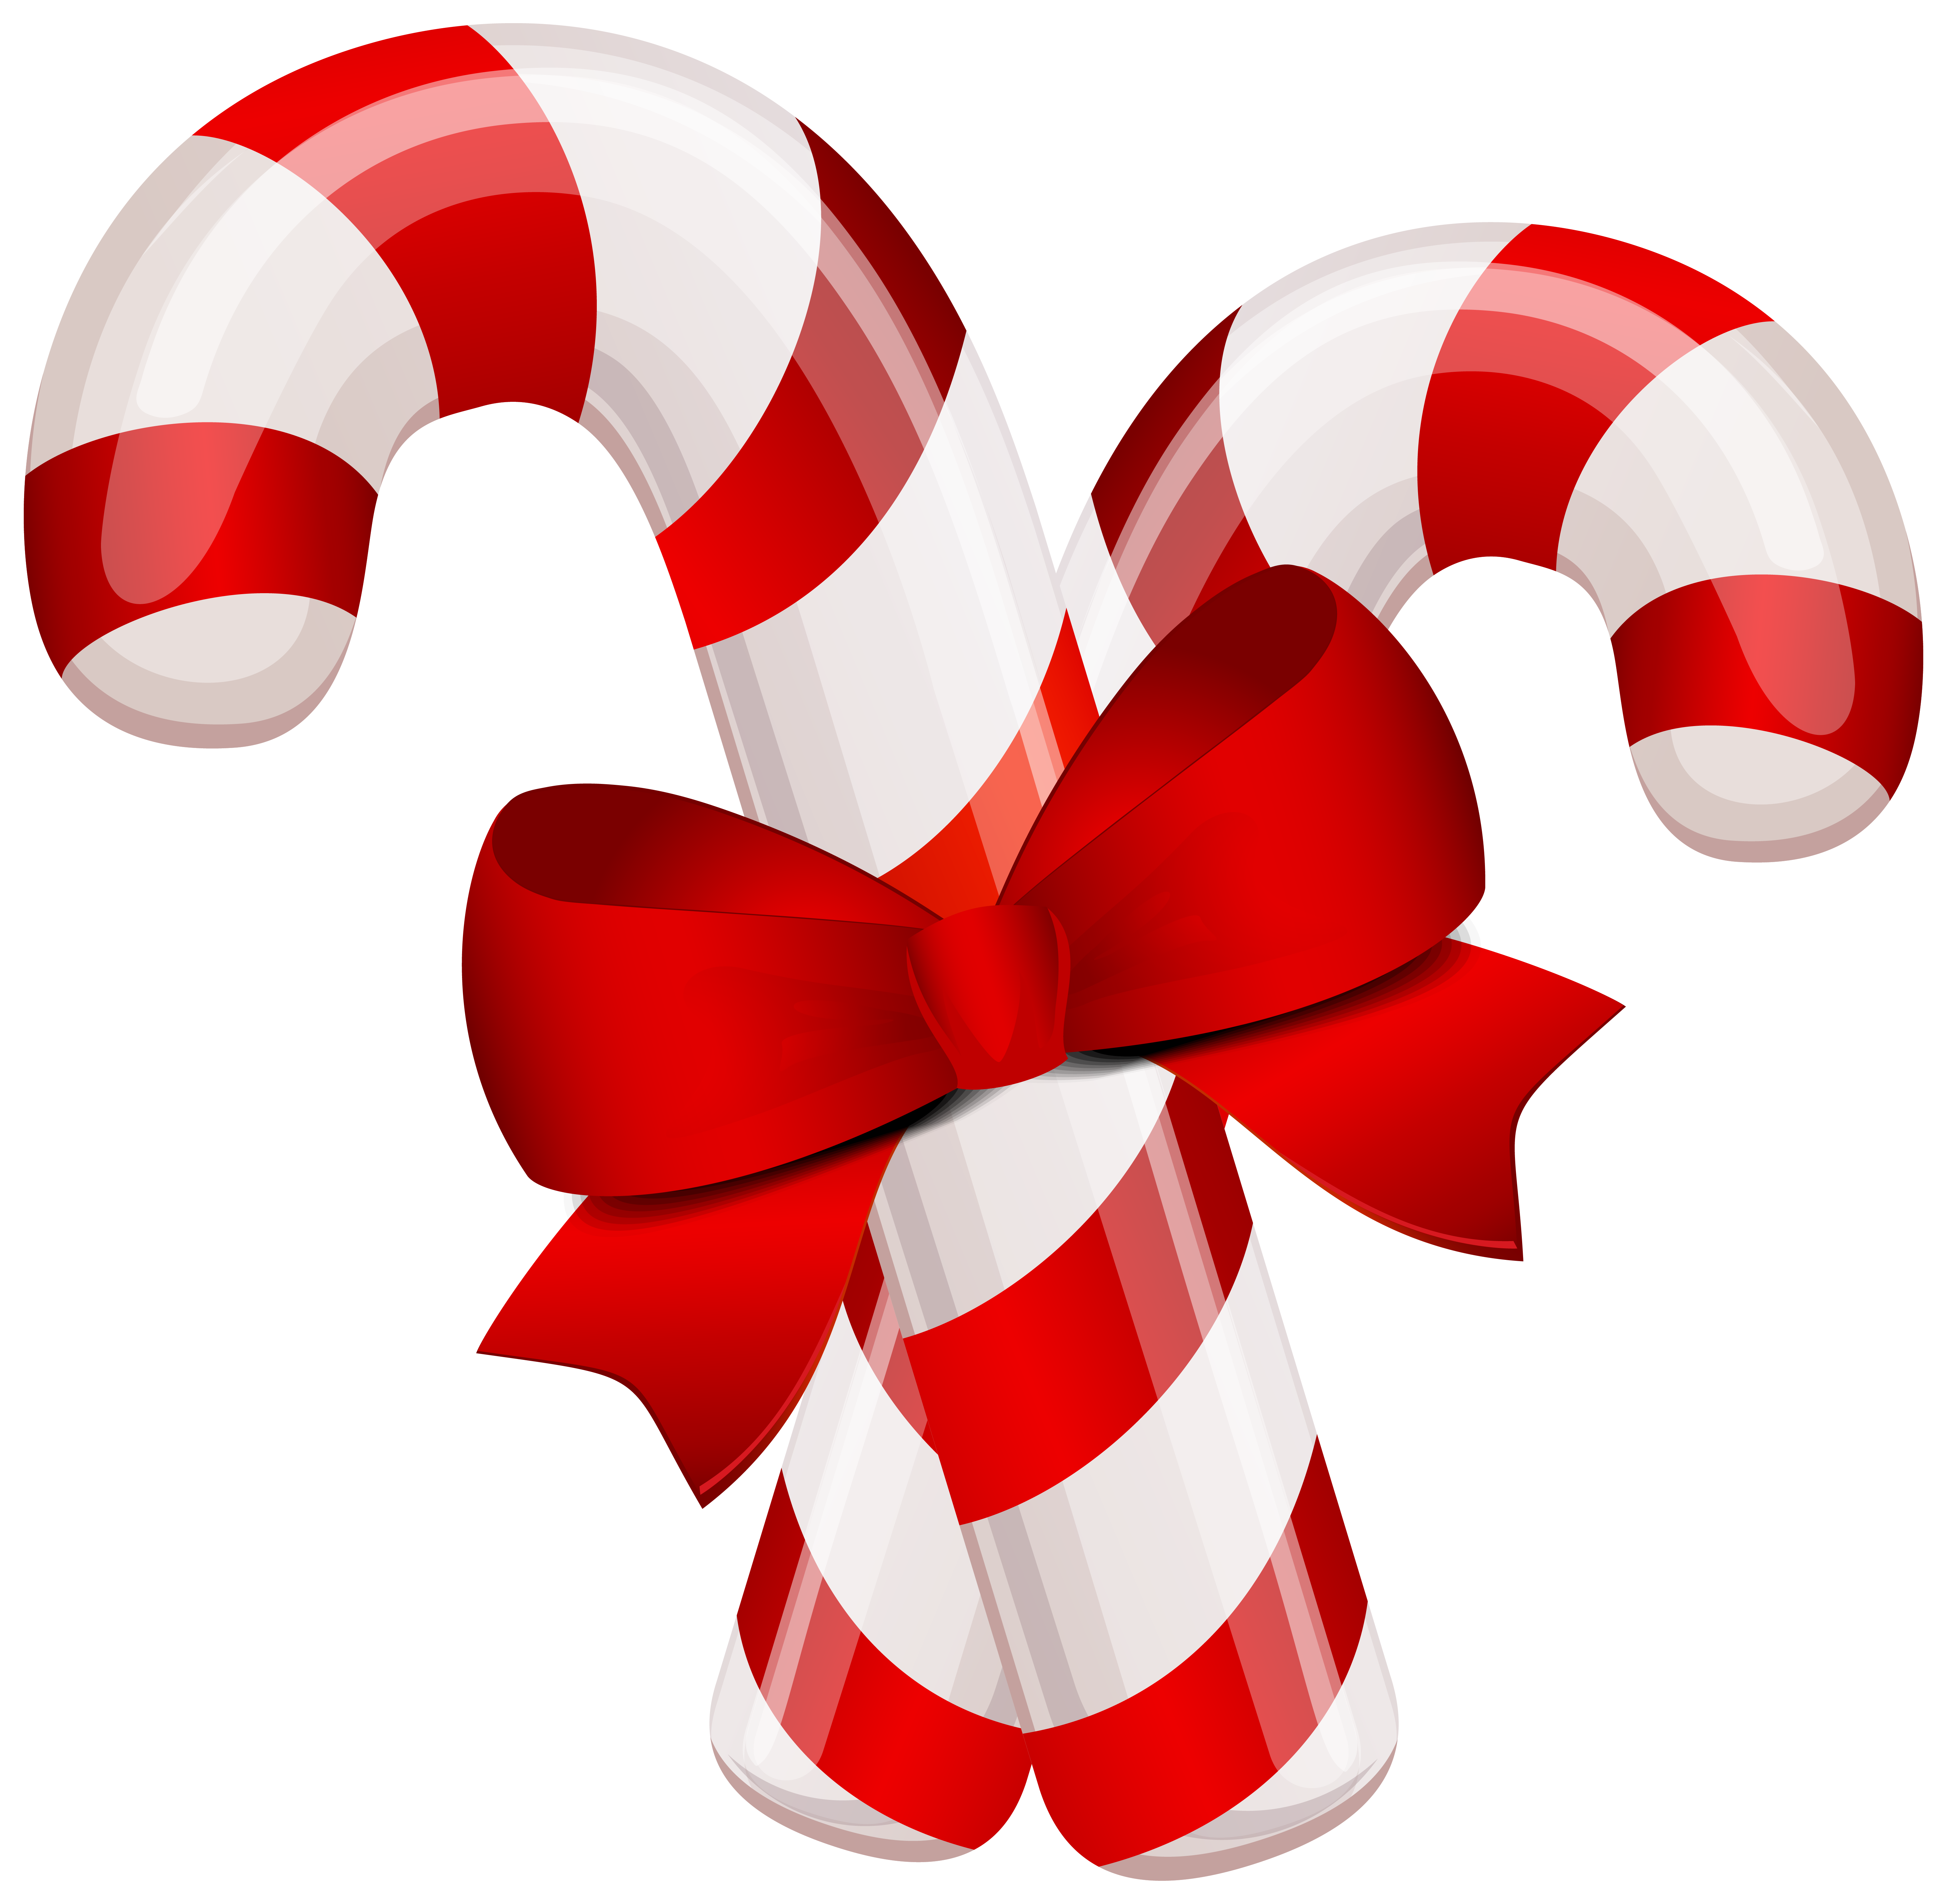 Christmas classic canes png. Movies clipart candy